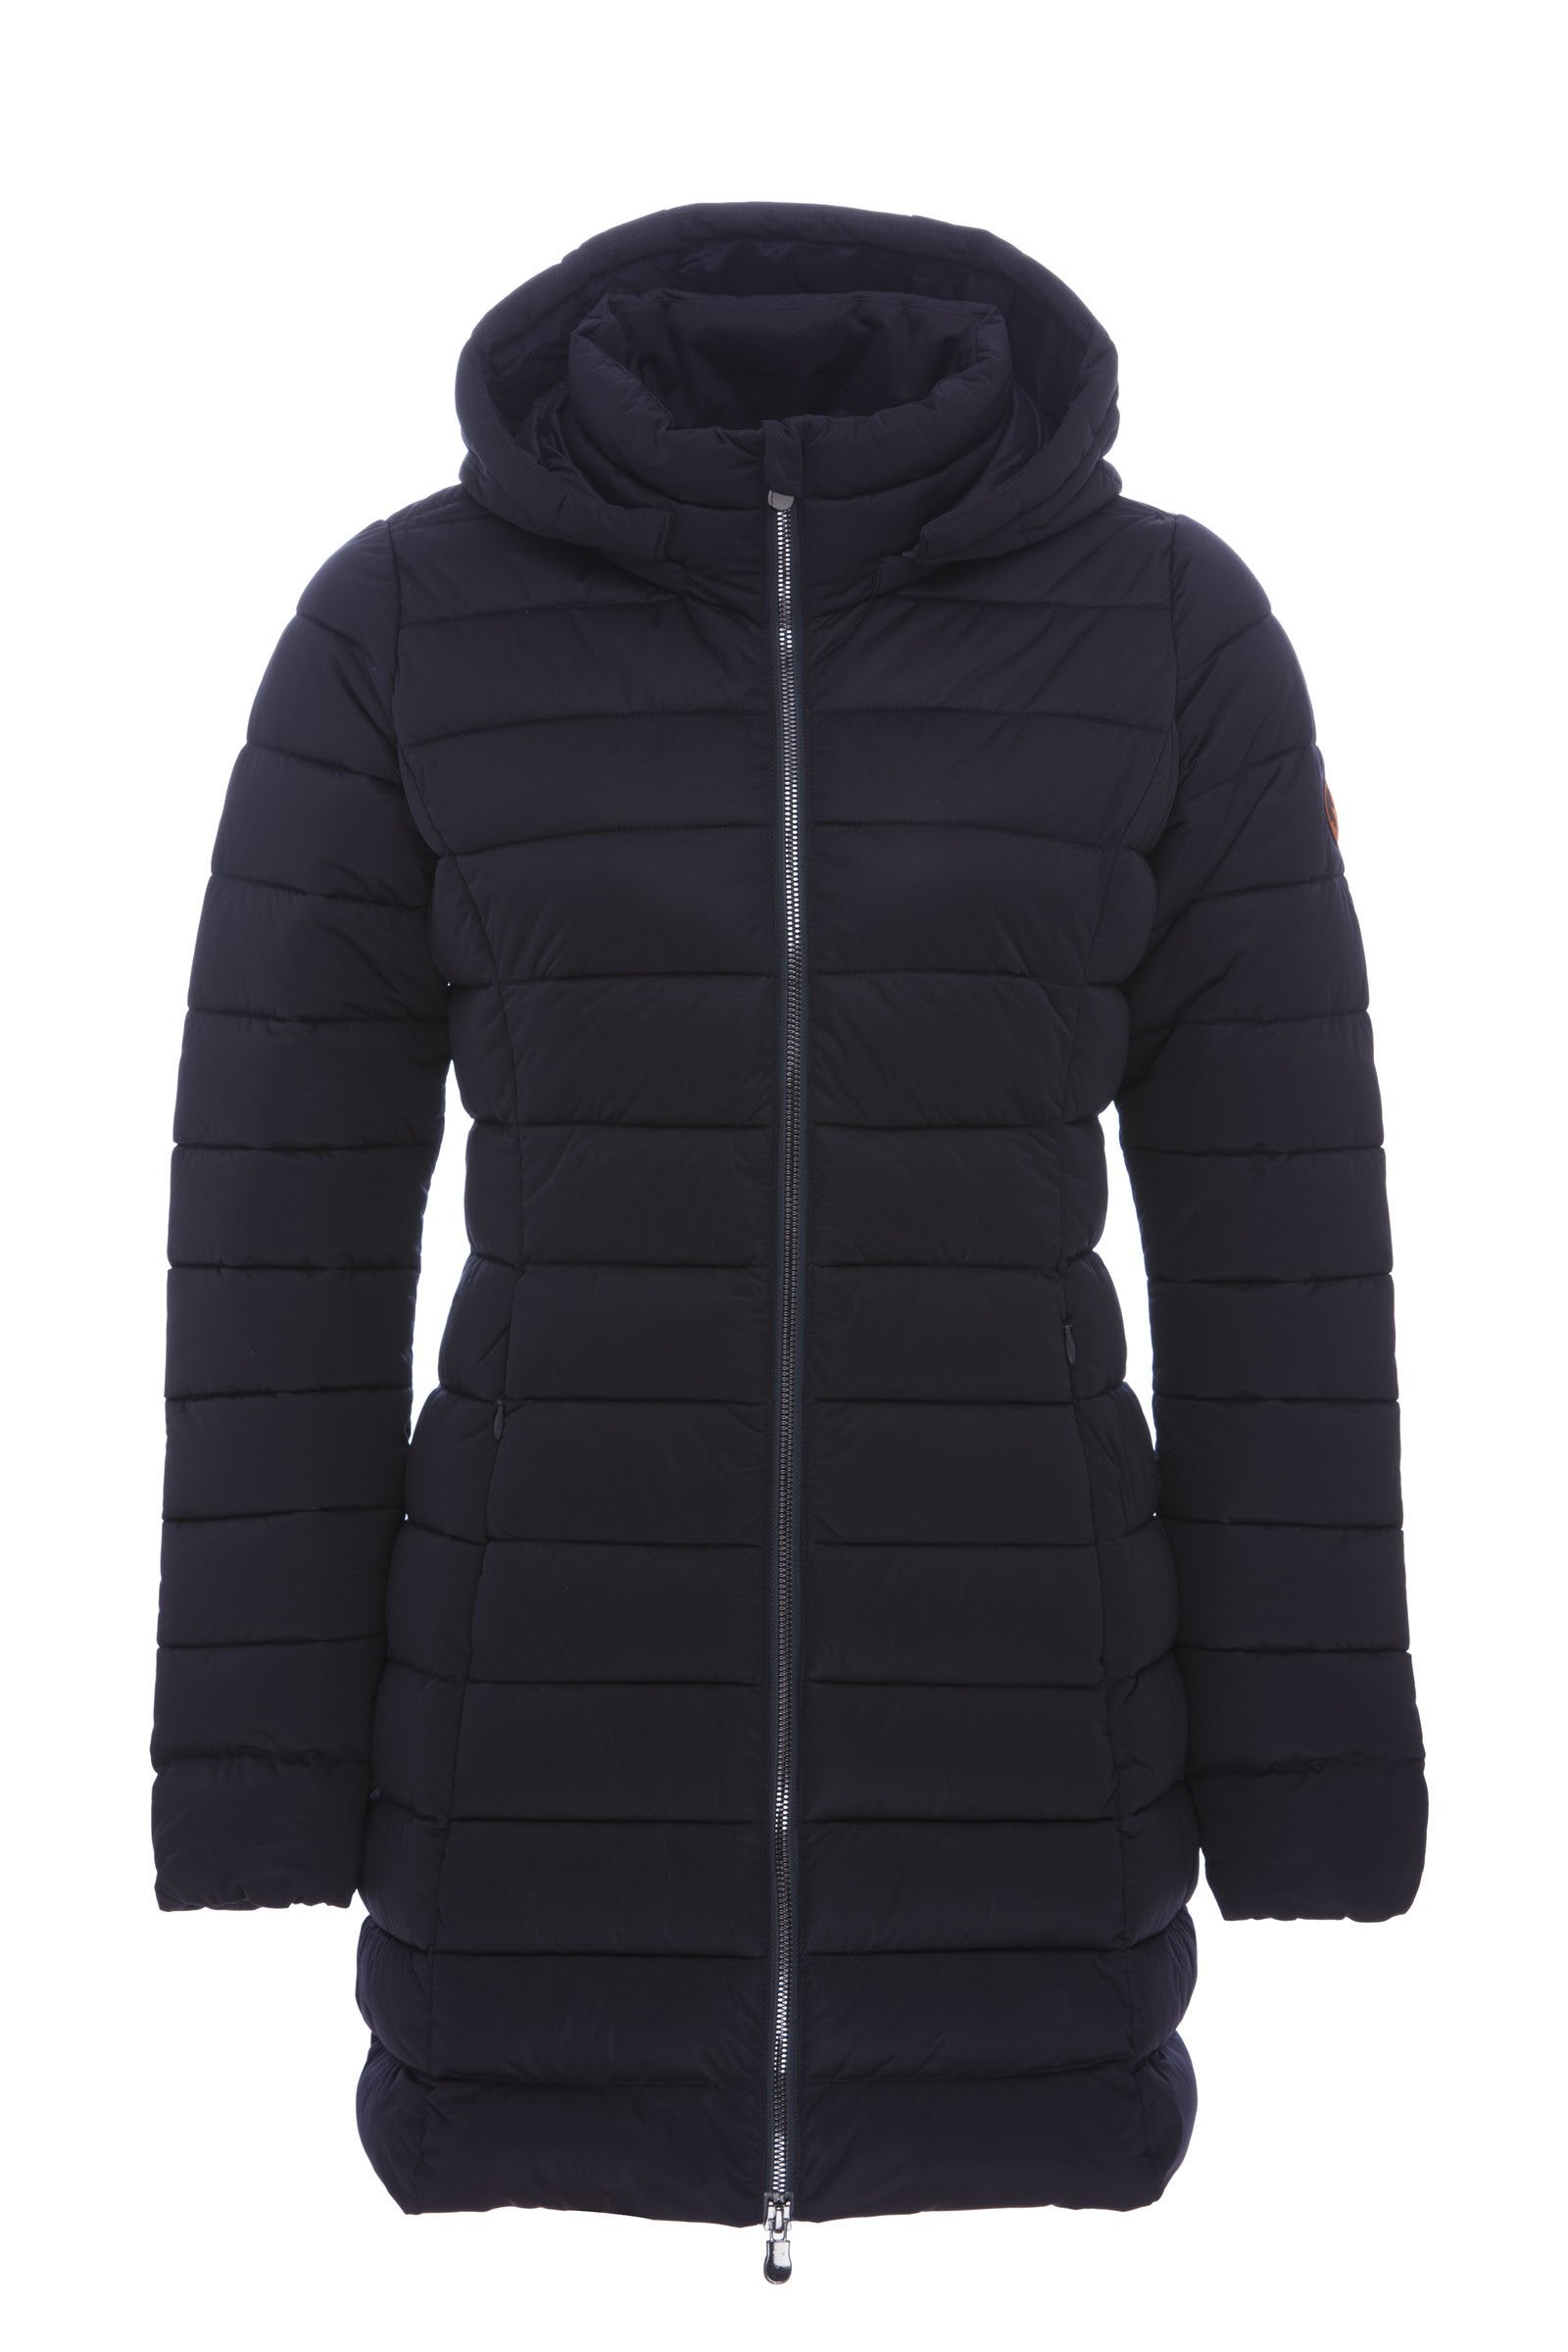 Womens SOLD Coat in Navy Blue